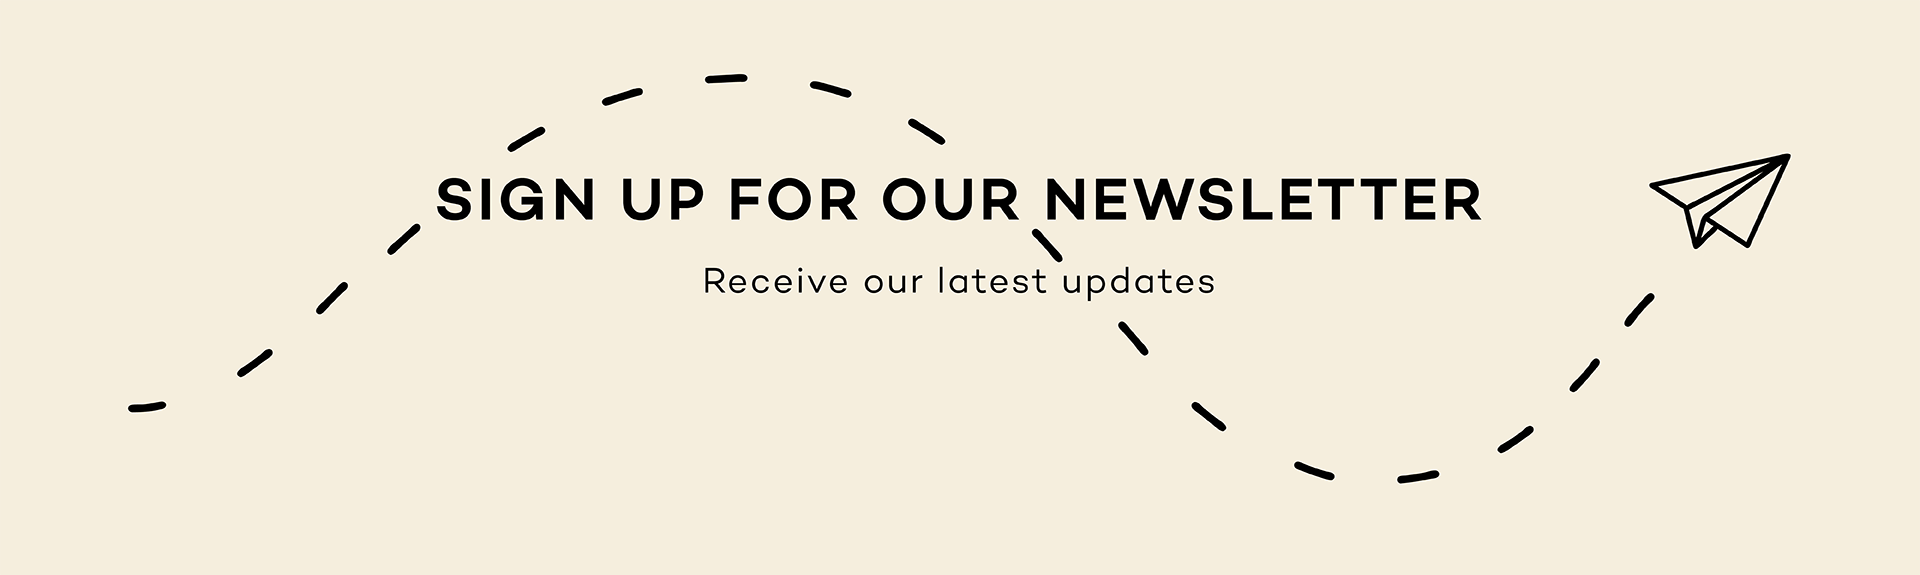 Sign up for our newsletter to receive our latest updates